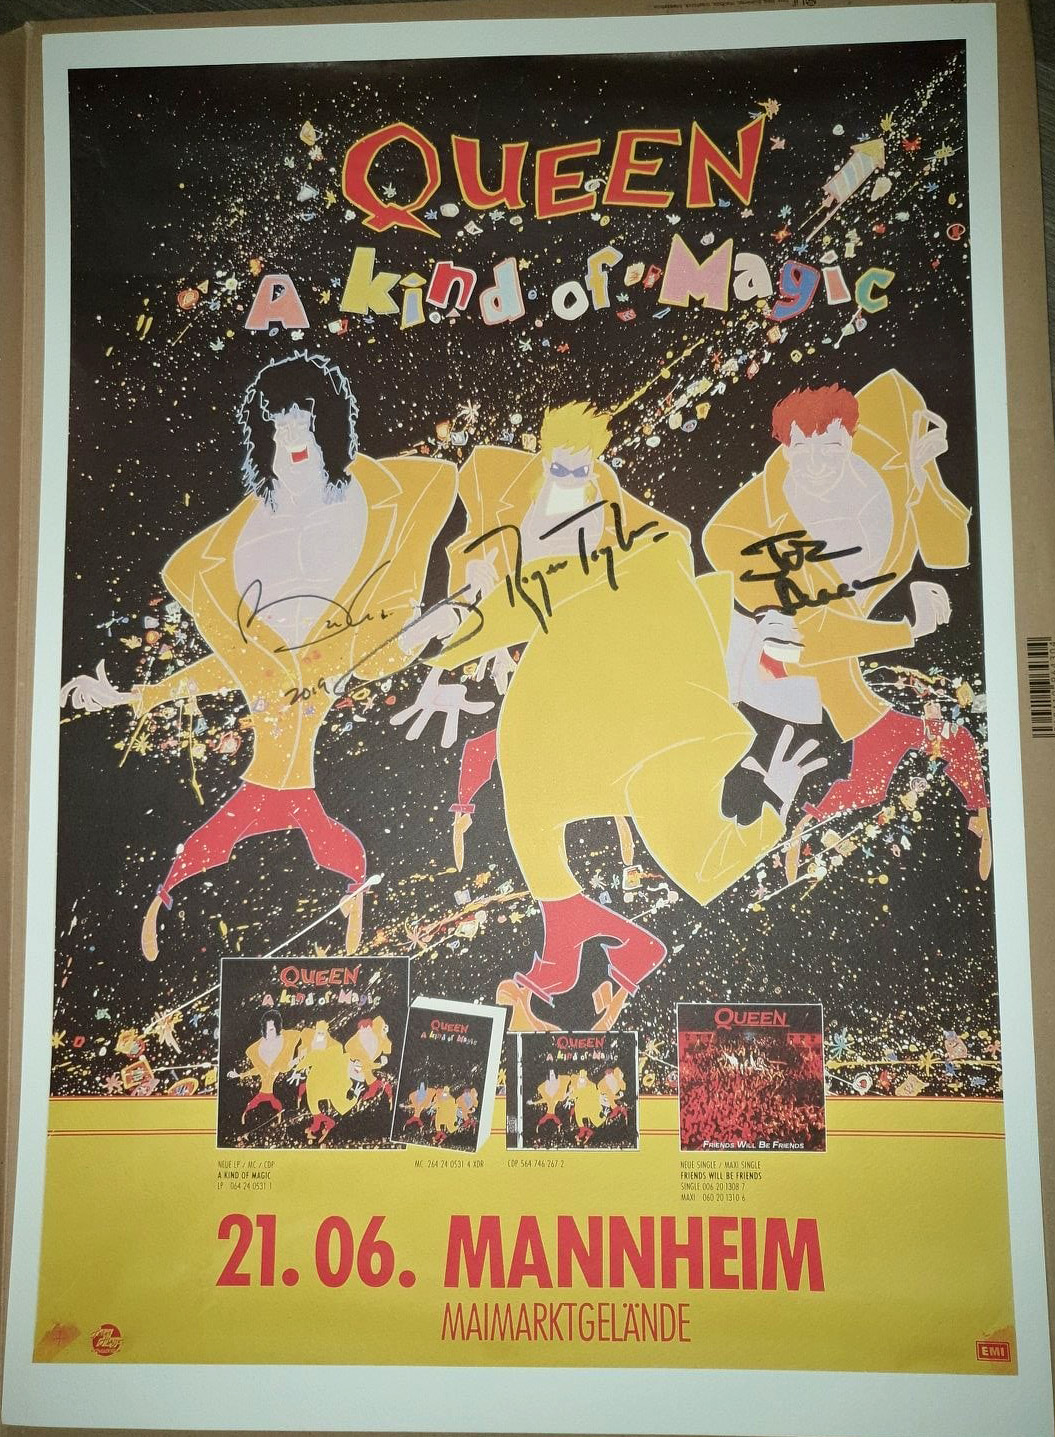 Queen in Mannheim on 21.06.1986 - autographed poster